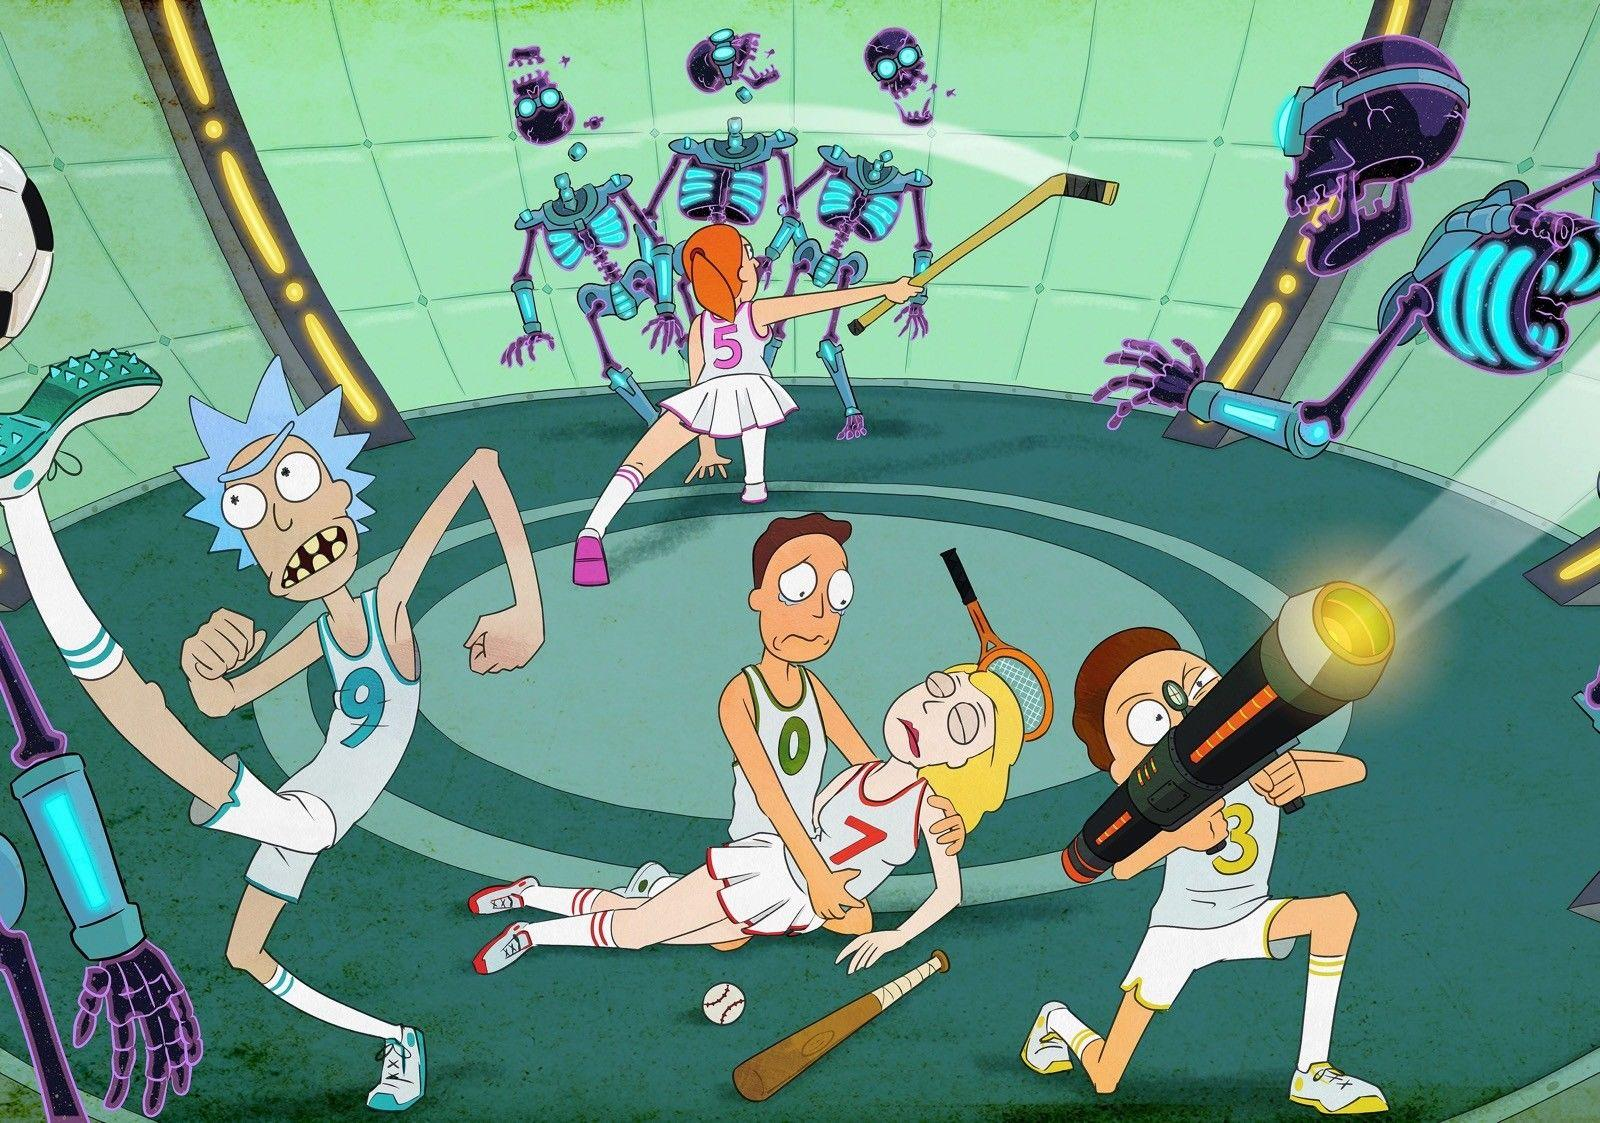 RICK MORTY Art Show Justin Roiland Sanchez Smith Art affiche en Soie Affiche 24x36 pouces (60x90cm) 04